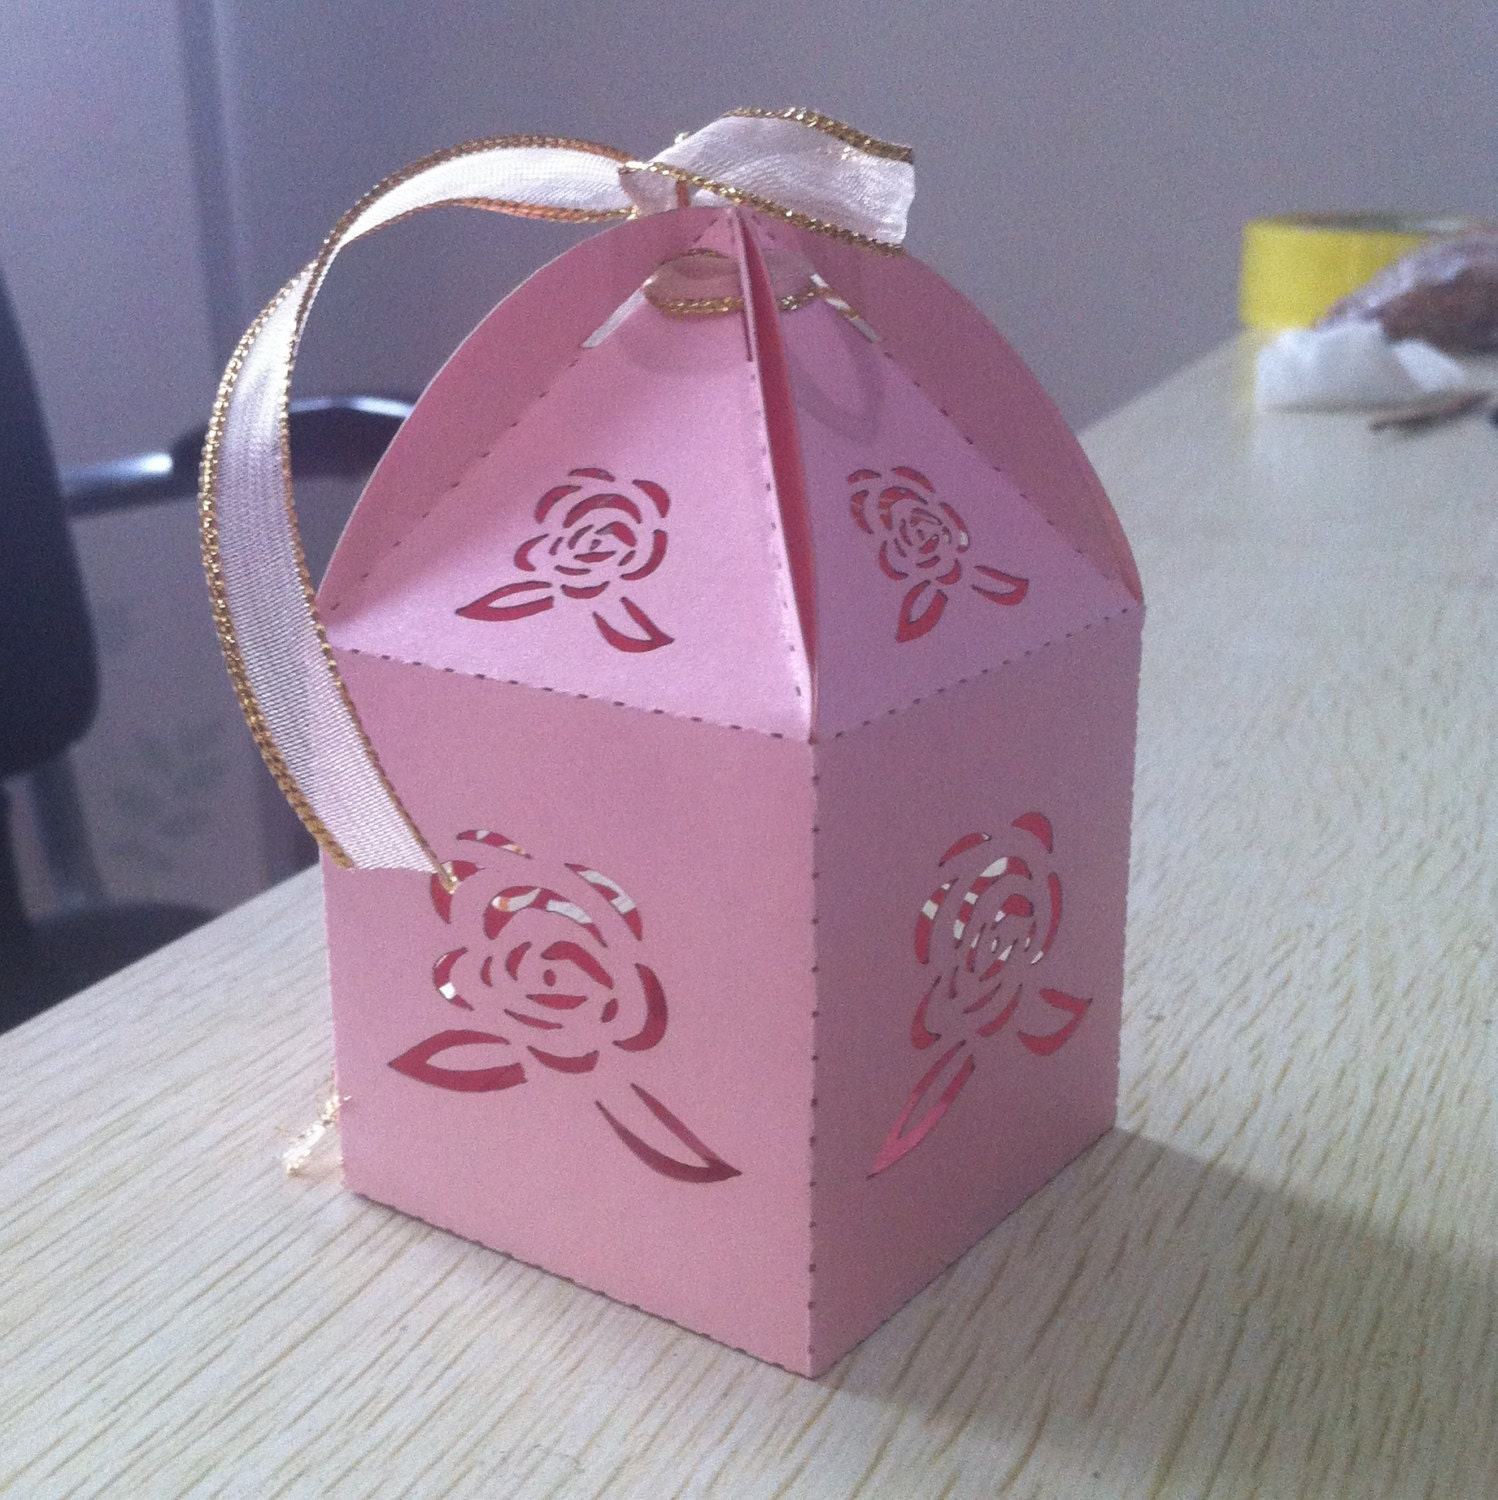 100pcs Rose Design Wedding favors,rustic wedding favor boxes with ...